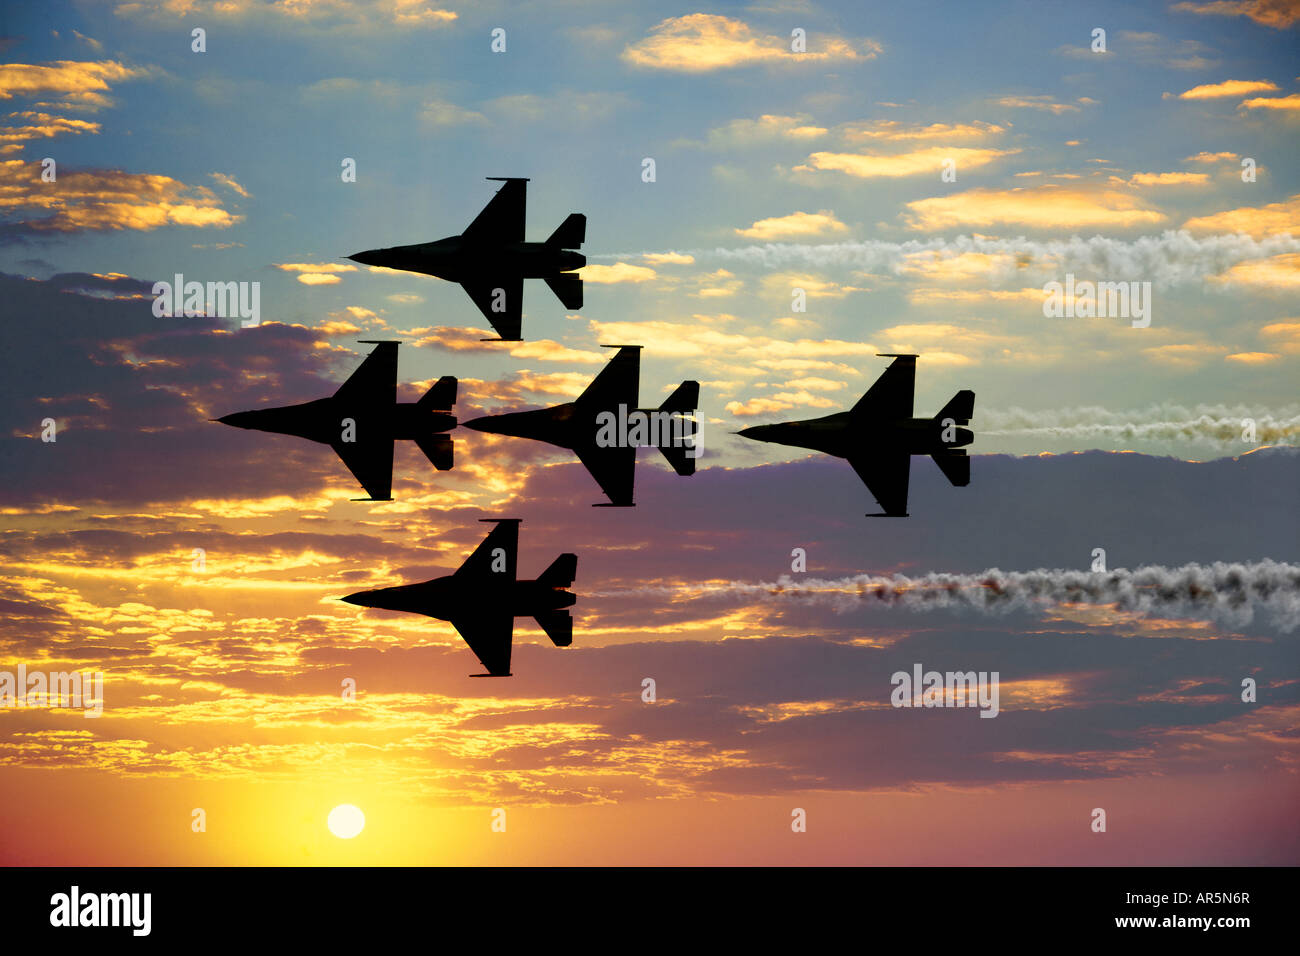 U.S. Thunderbirds in flight at airshow, Smyrna, Tennessee - Stock Image